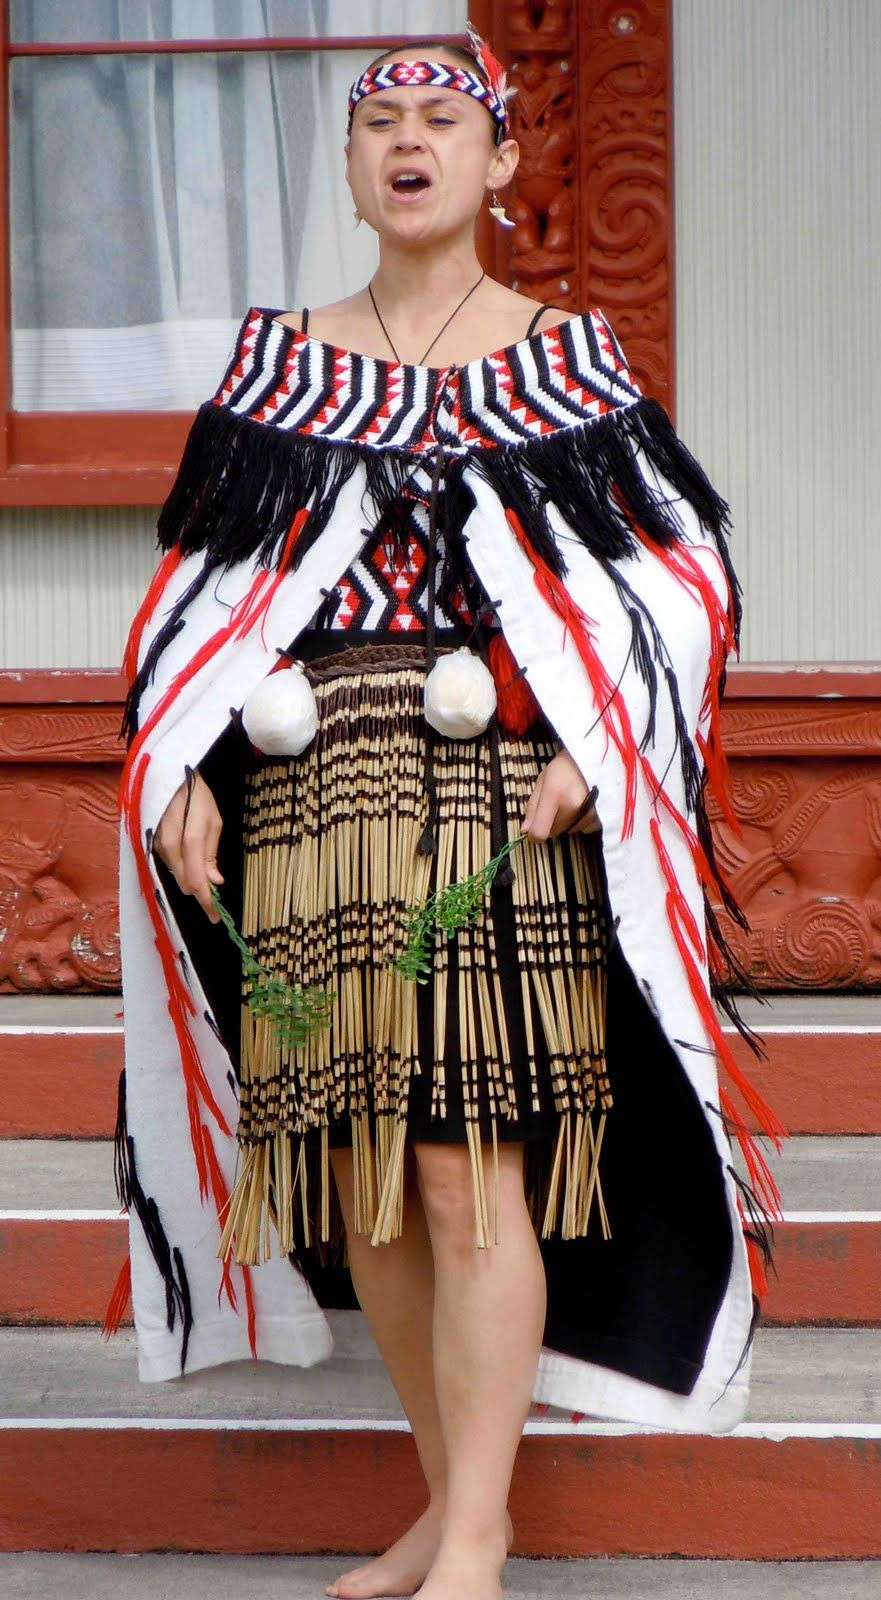 Maori Clothing: New Zealand ( Maori ) (With Images)